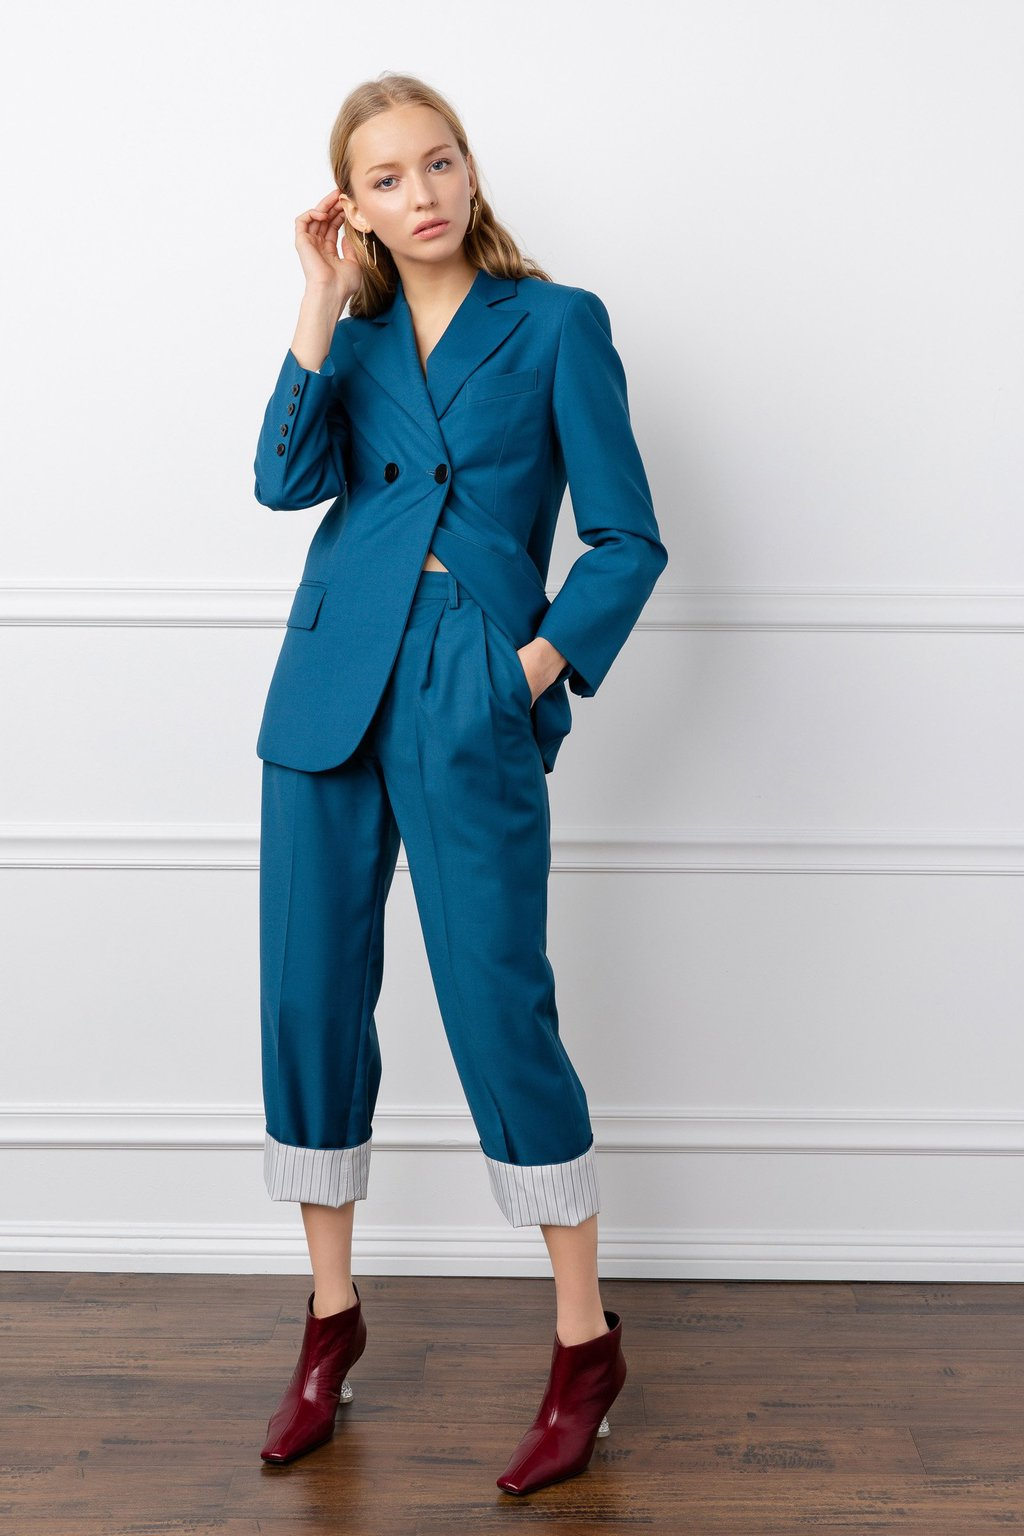 Josie Turquoise Blazer suit set by J.ING women's fashion clothing